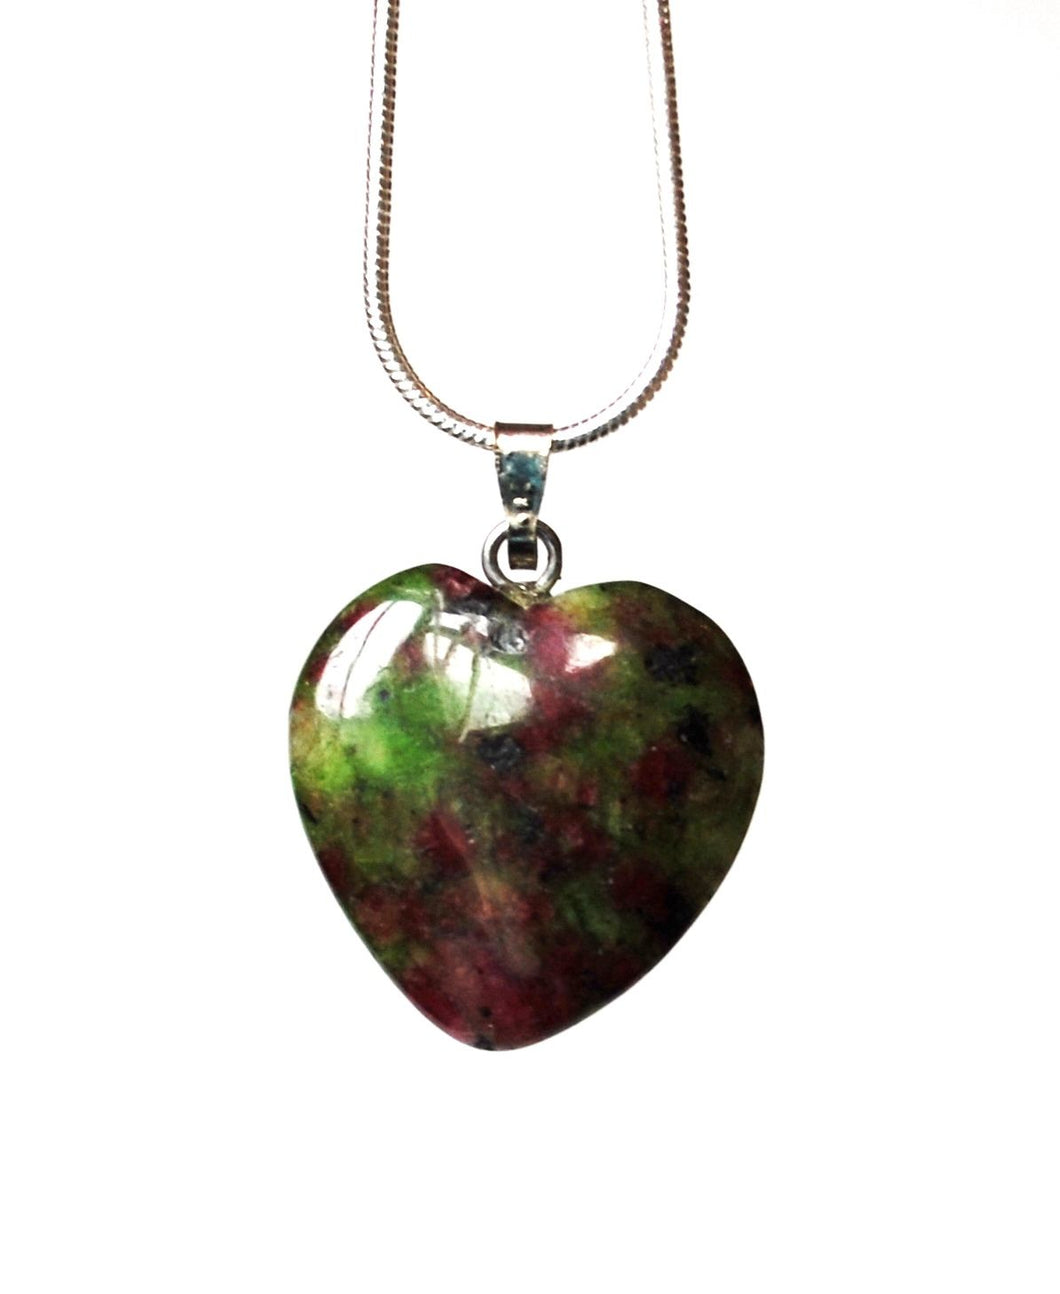 Ruby In Fuschite Crystal Stone Small Heart Pendant Necklace Gift